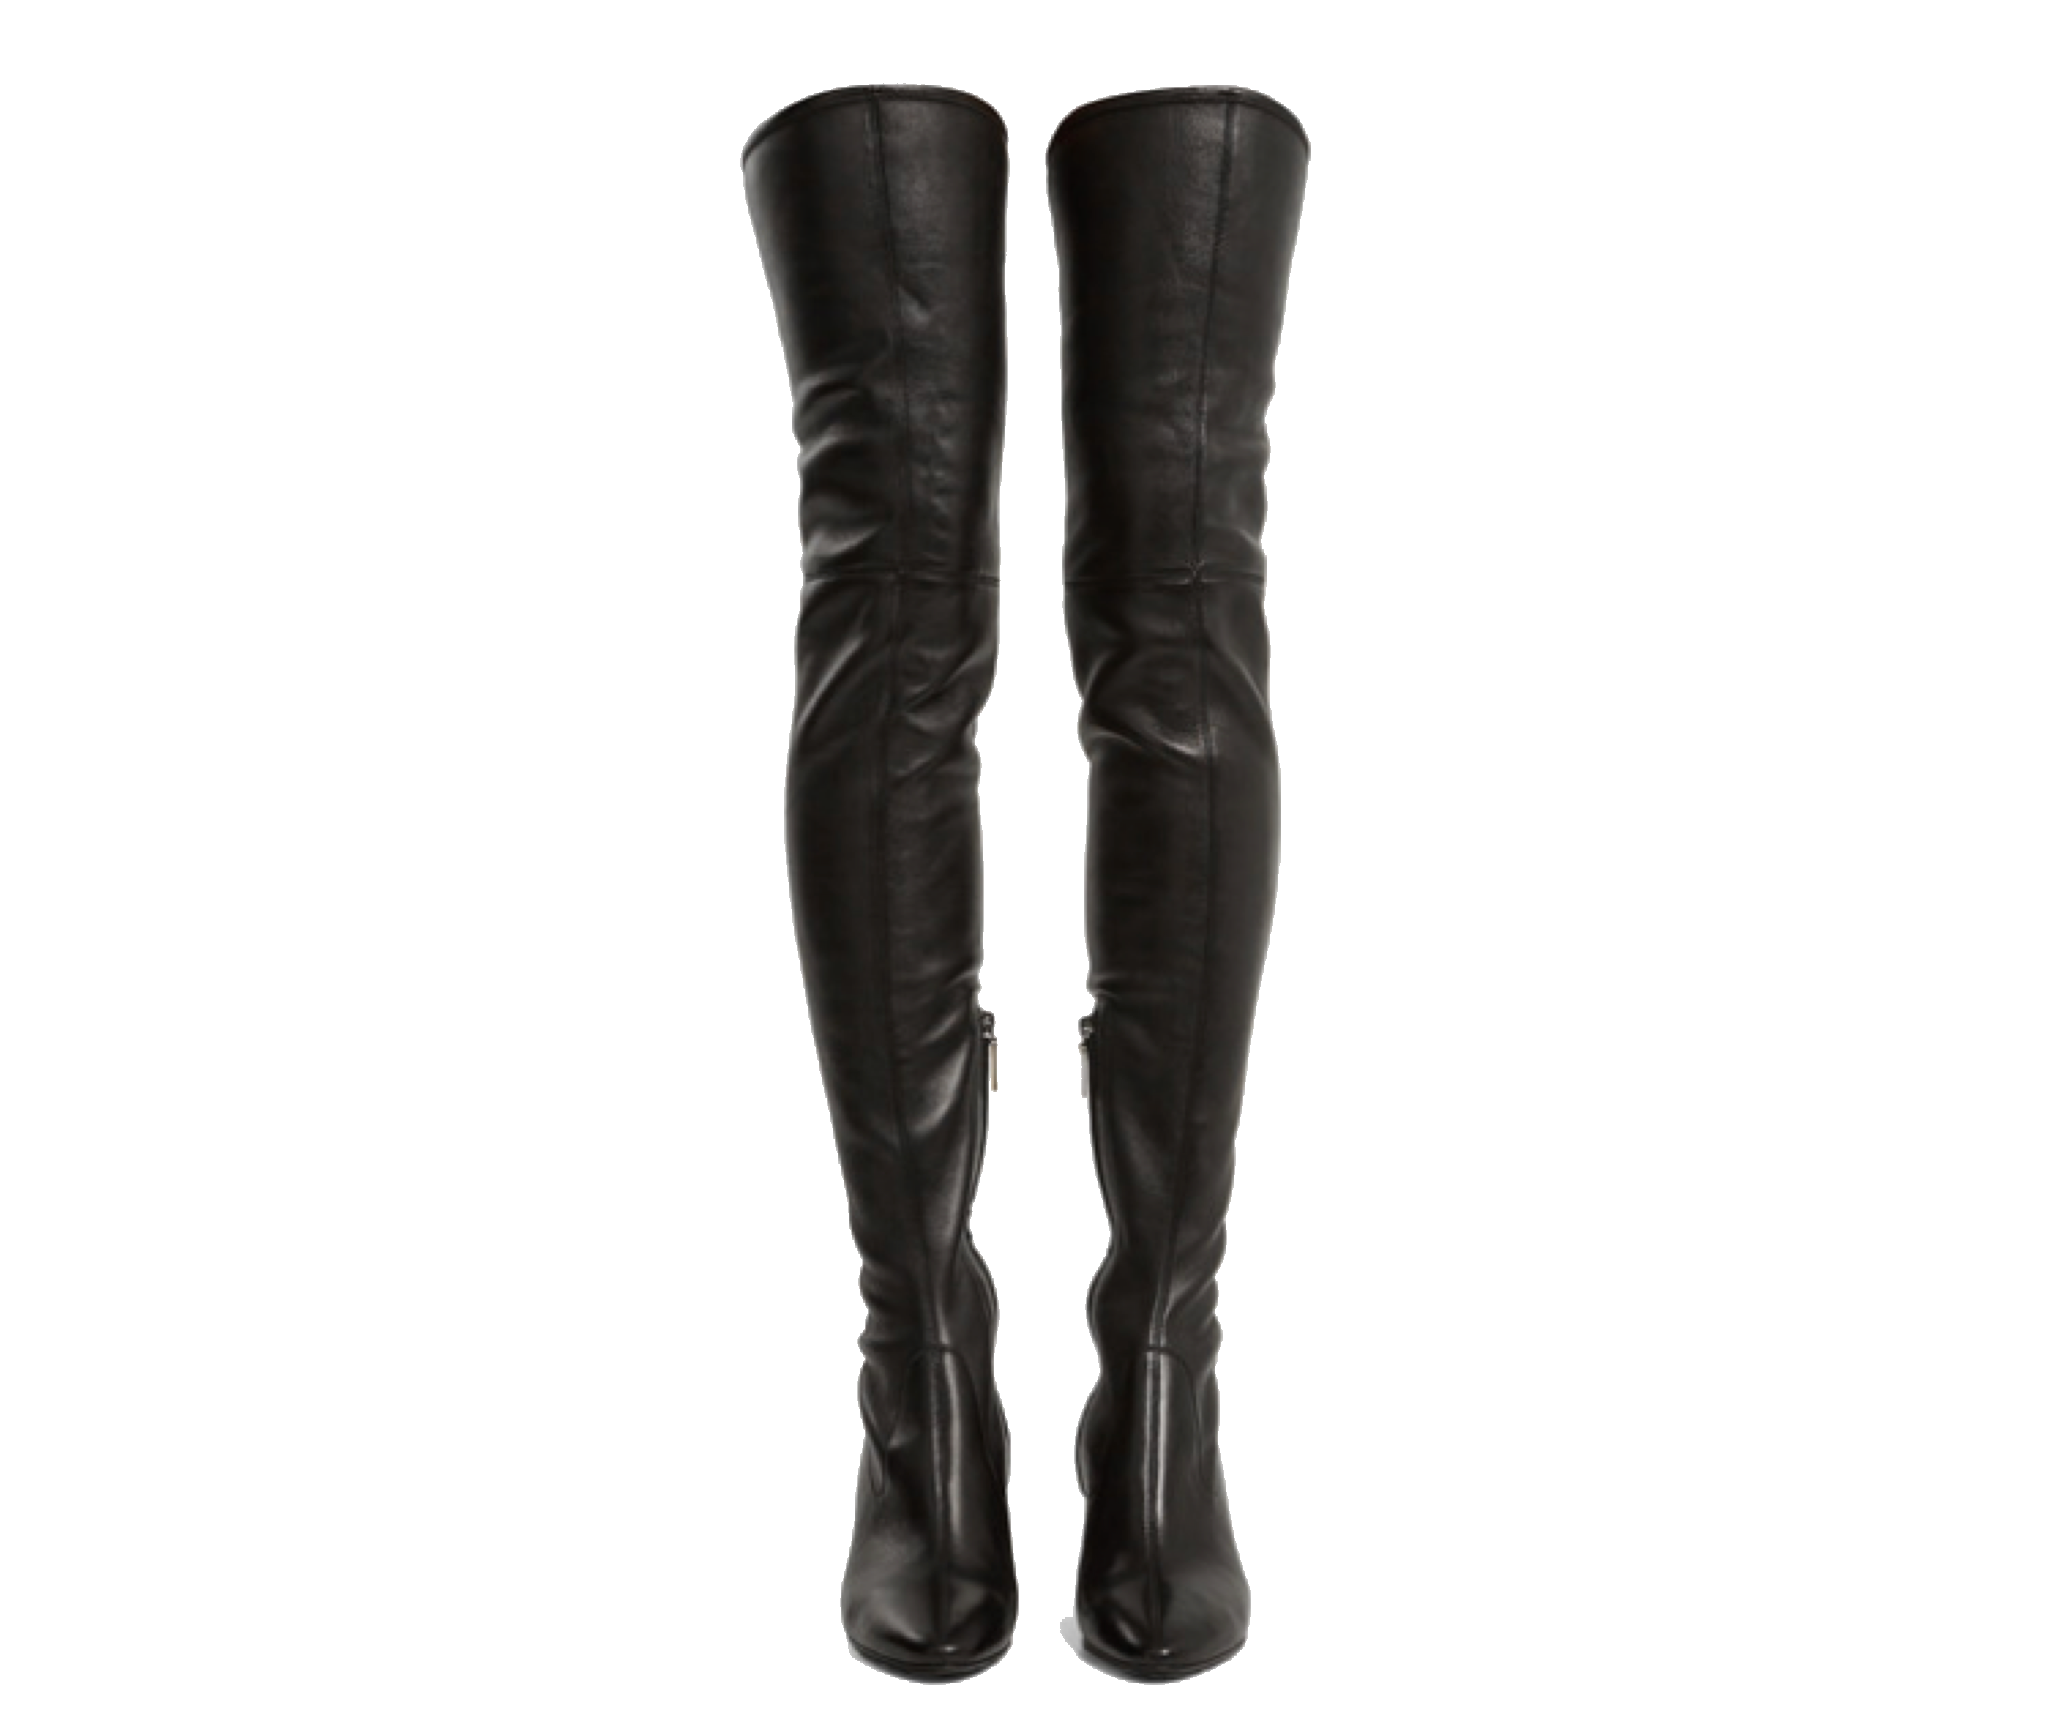 Polyvore Thigh High Boots